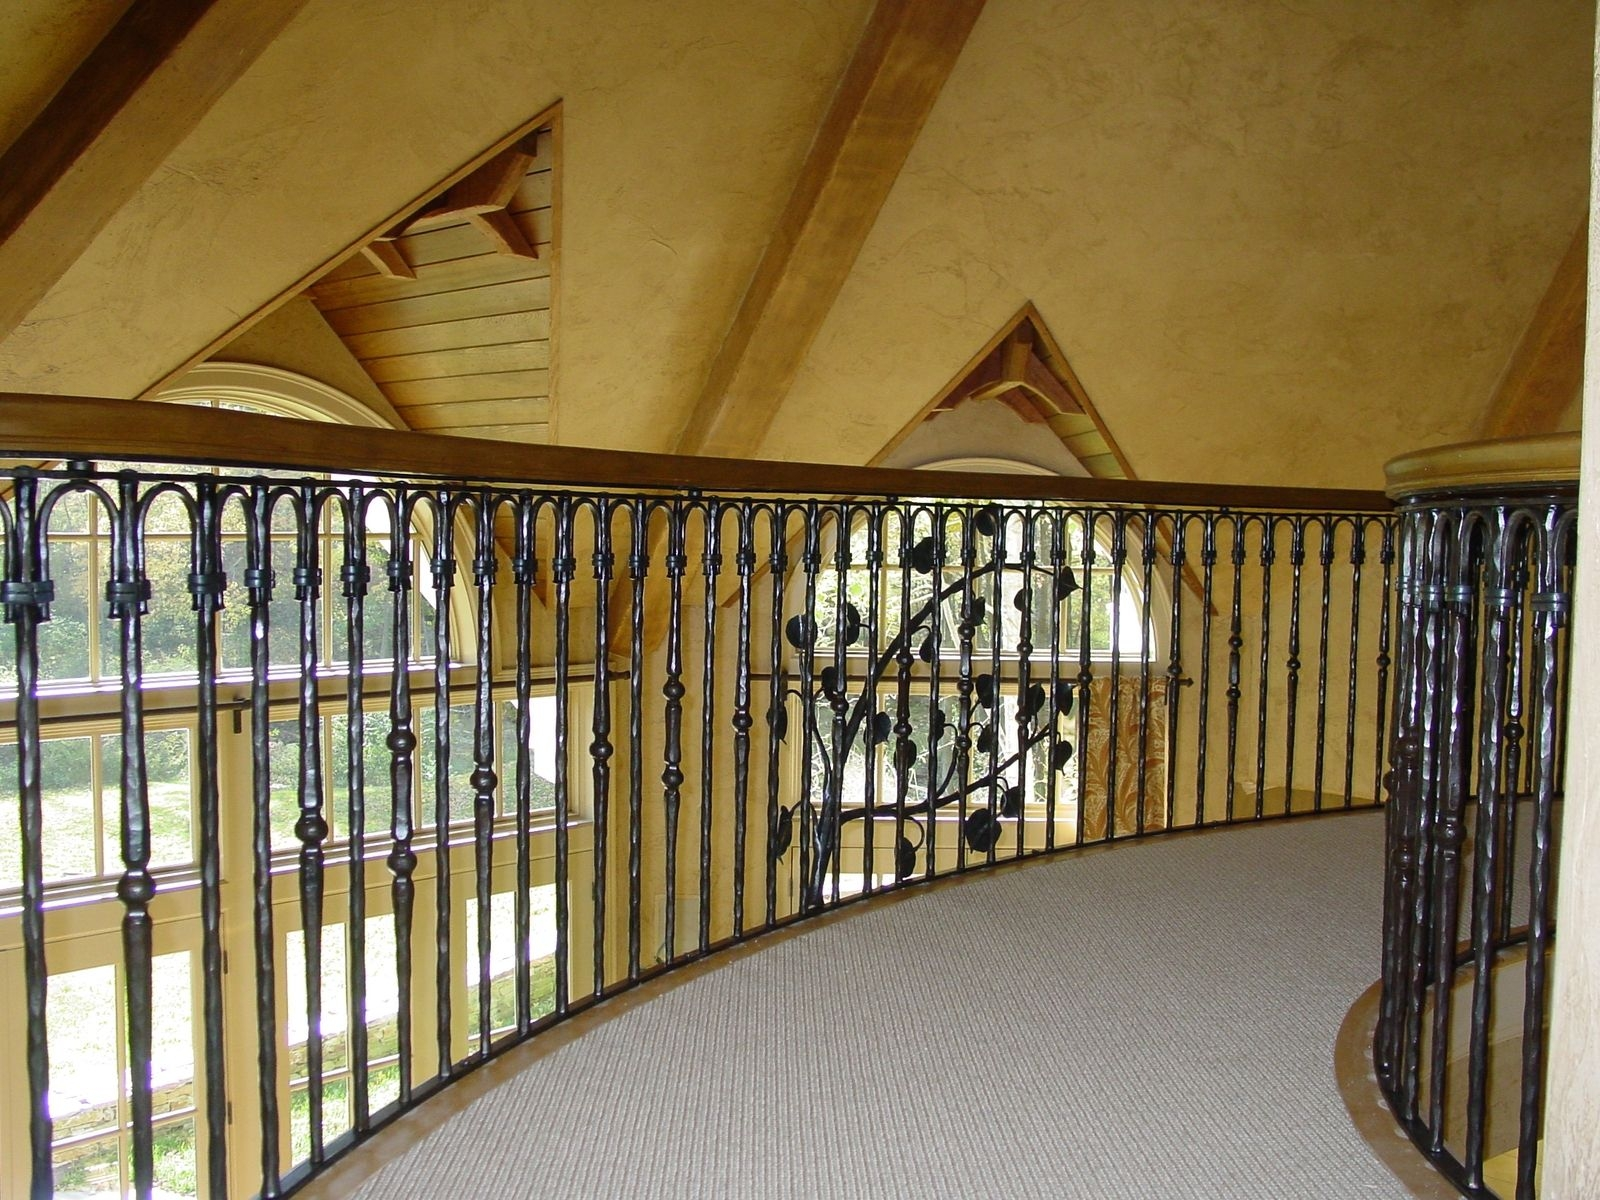 Custom Made Wrought Iron Stair And Bridge Railing By Rising Sun | Outdoor Iron Staircase Designs | Gallery | Outdoor Balcony | Exterior | Curved Staircase Carpet | Wooden Staircase